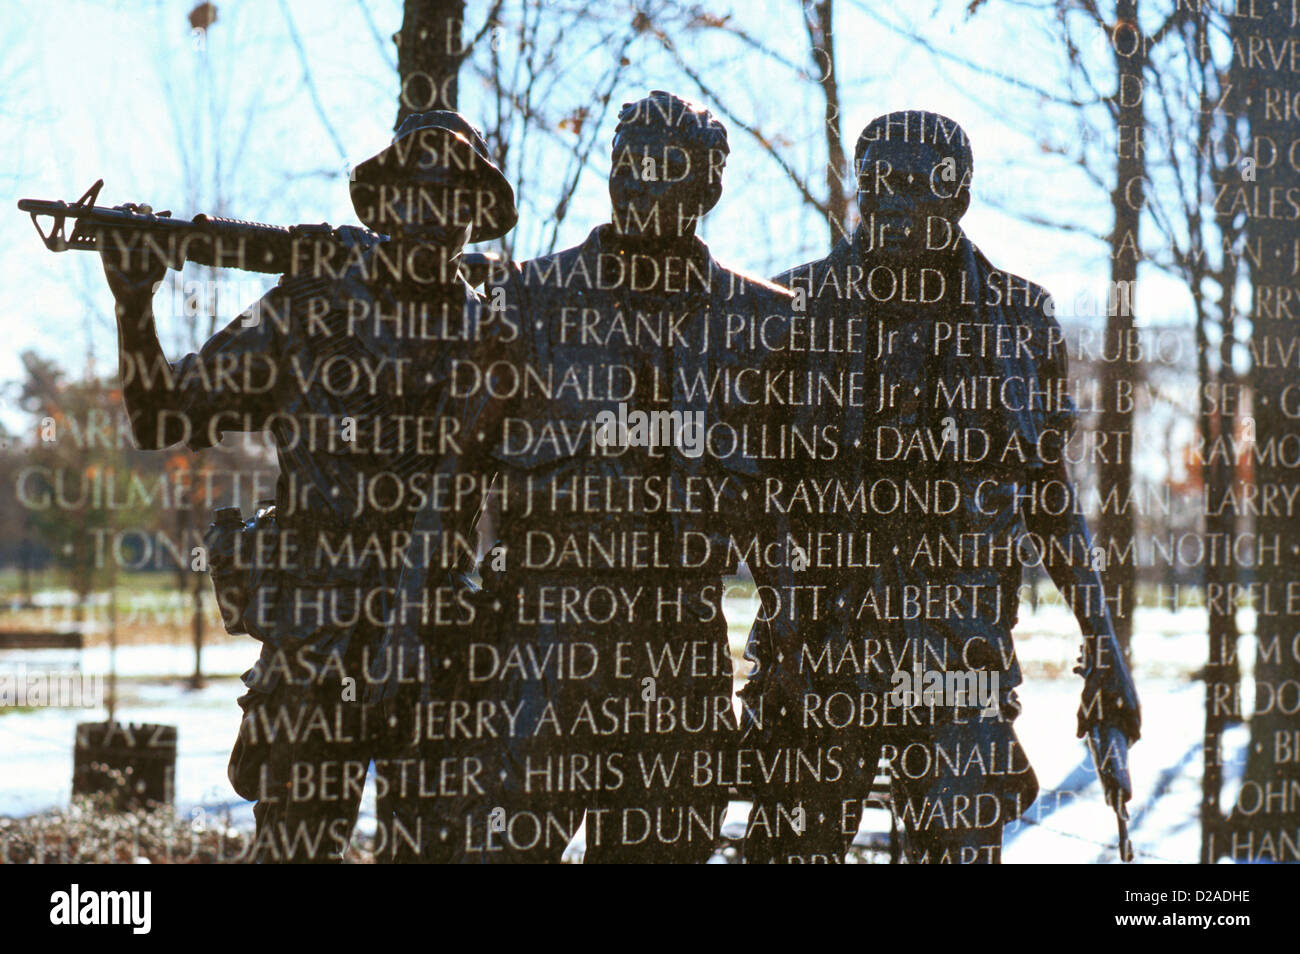 Washington, D.C. Double Exposure Of The Vietnam Memorial. Sculpture Of Soldiers Reflected In Wall. - Stock Image